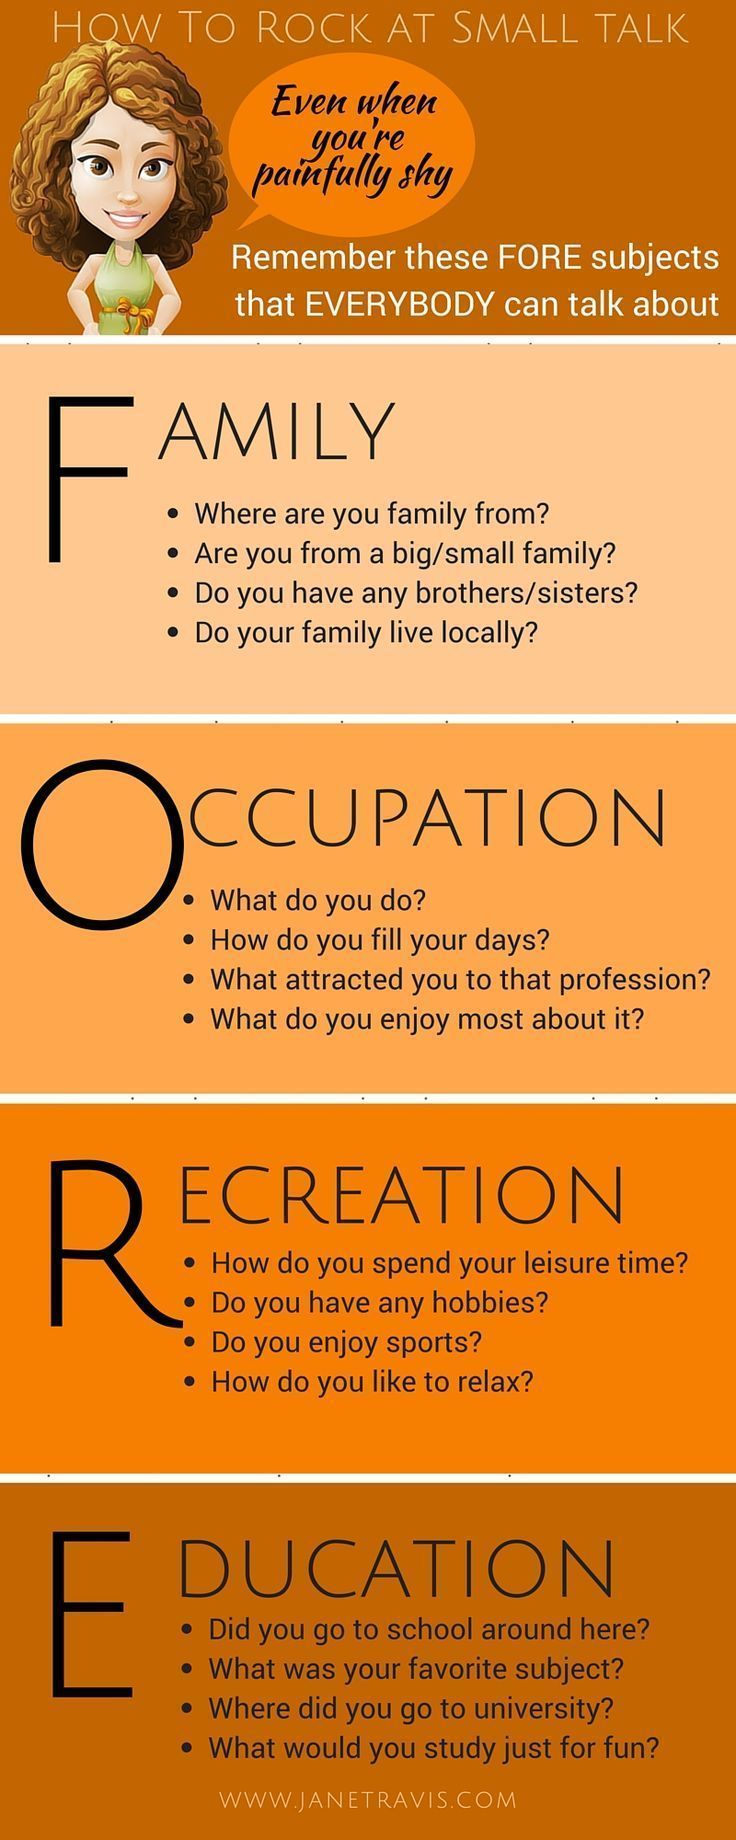 Infographic: Got a party coming up and dreading the small talk? Remember these FORE conversation starters and you'll soon find common ground.